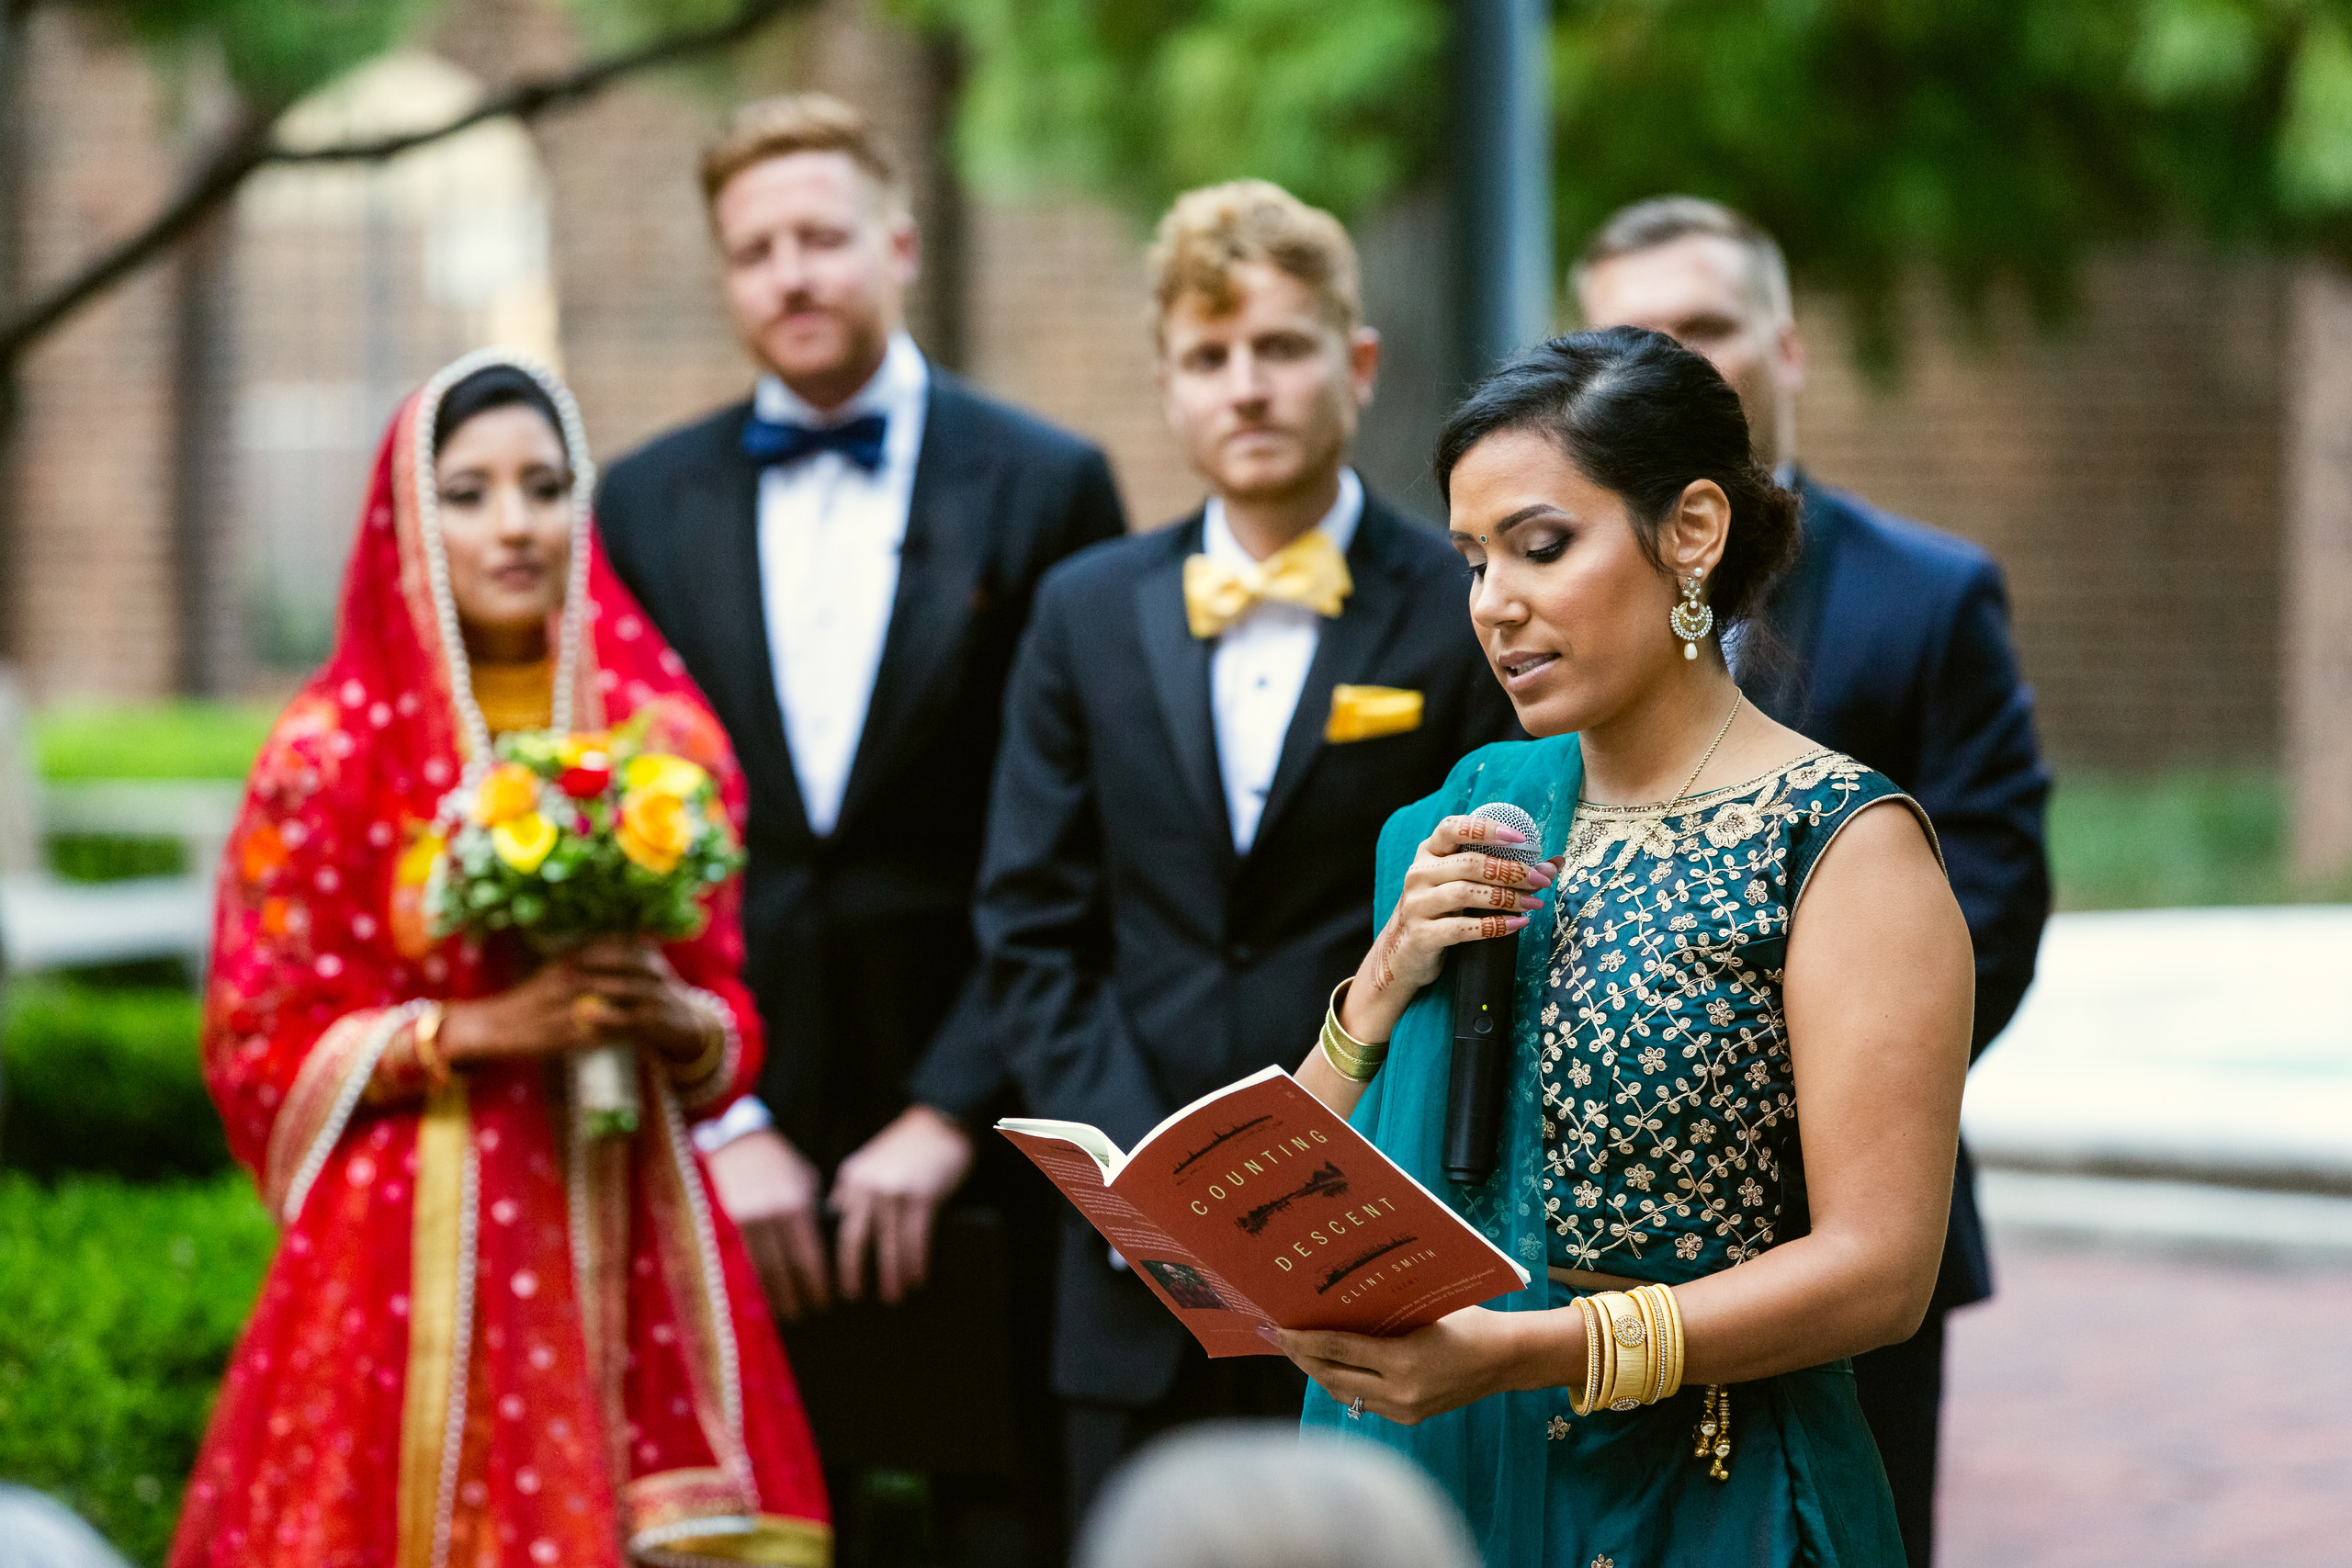 The bride's sister reads a poem during the wedding ceremony at the Penn Museum in Philadelphia, Pennsylvania.